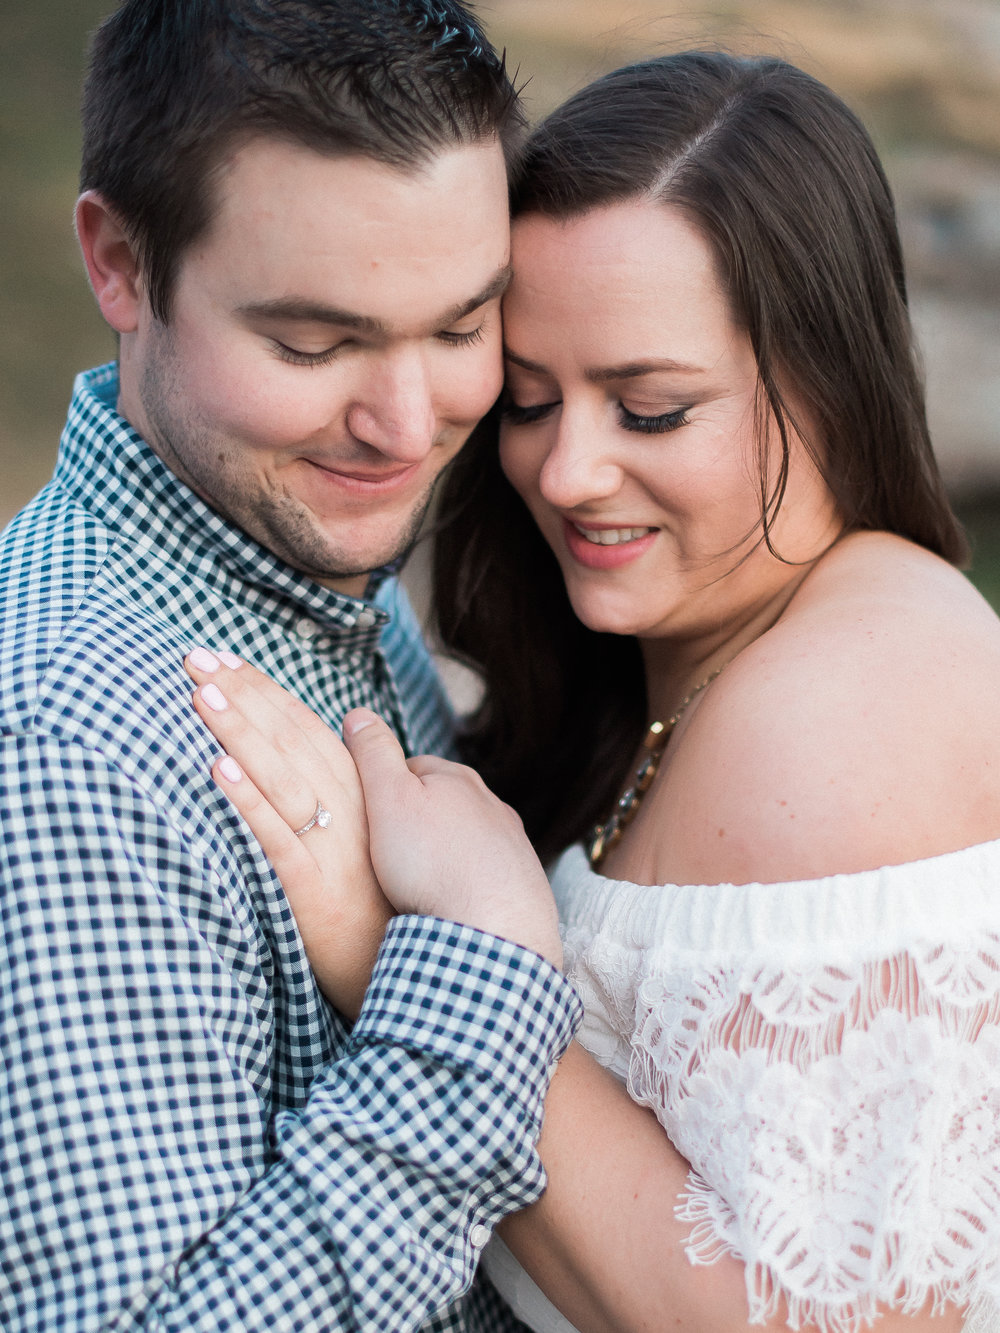 Megan+David_Engagement_spp-67.jpg